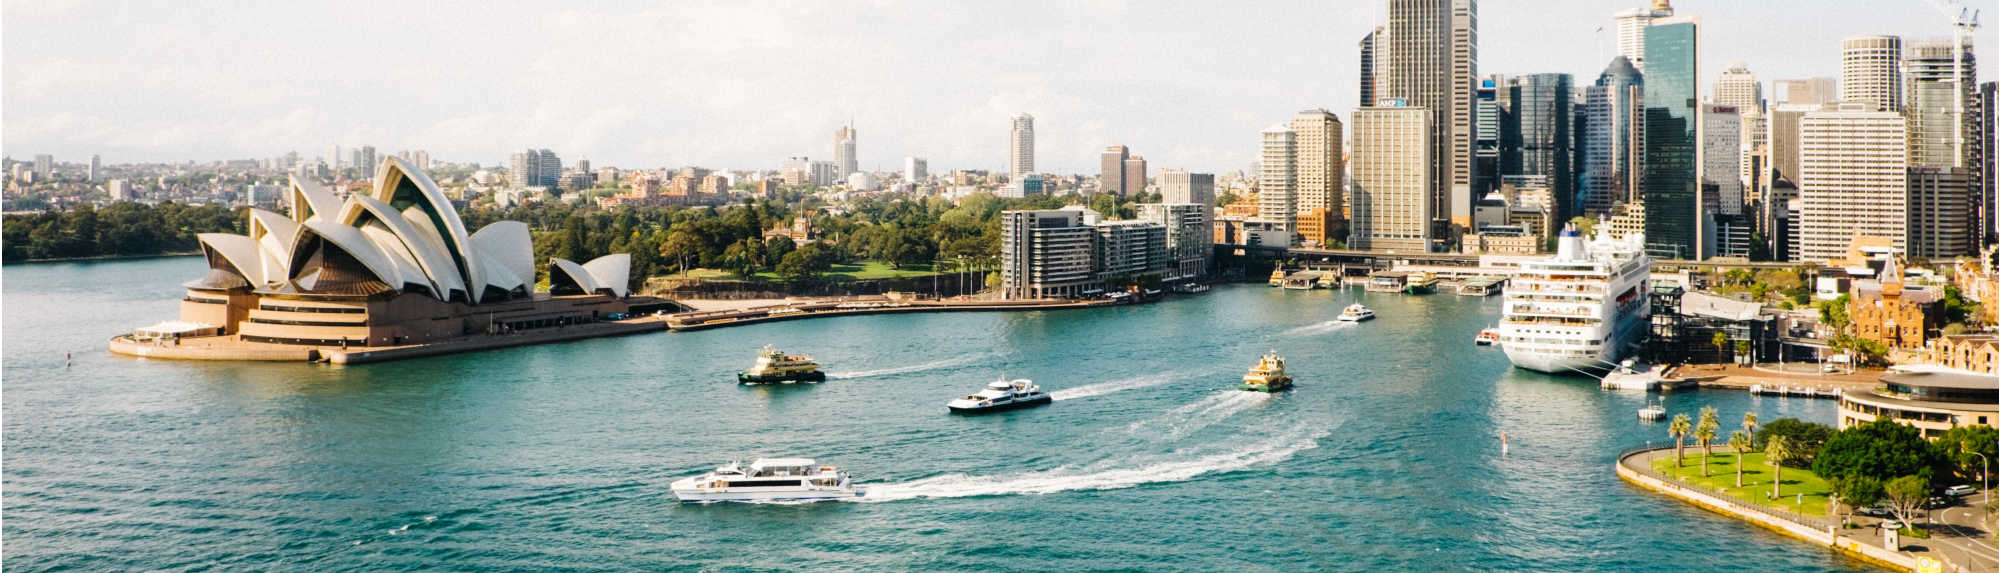 Top 6 places to travel in Australia in November